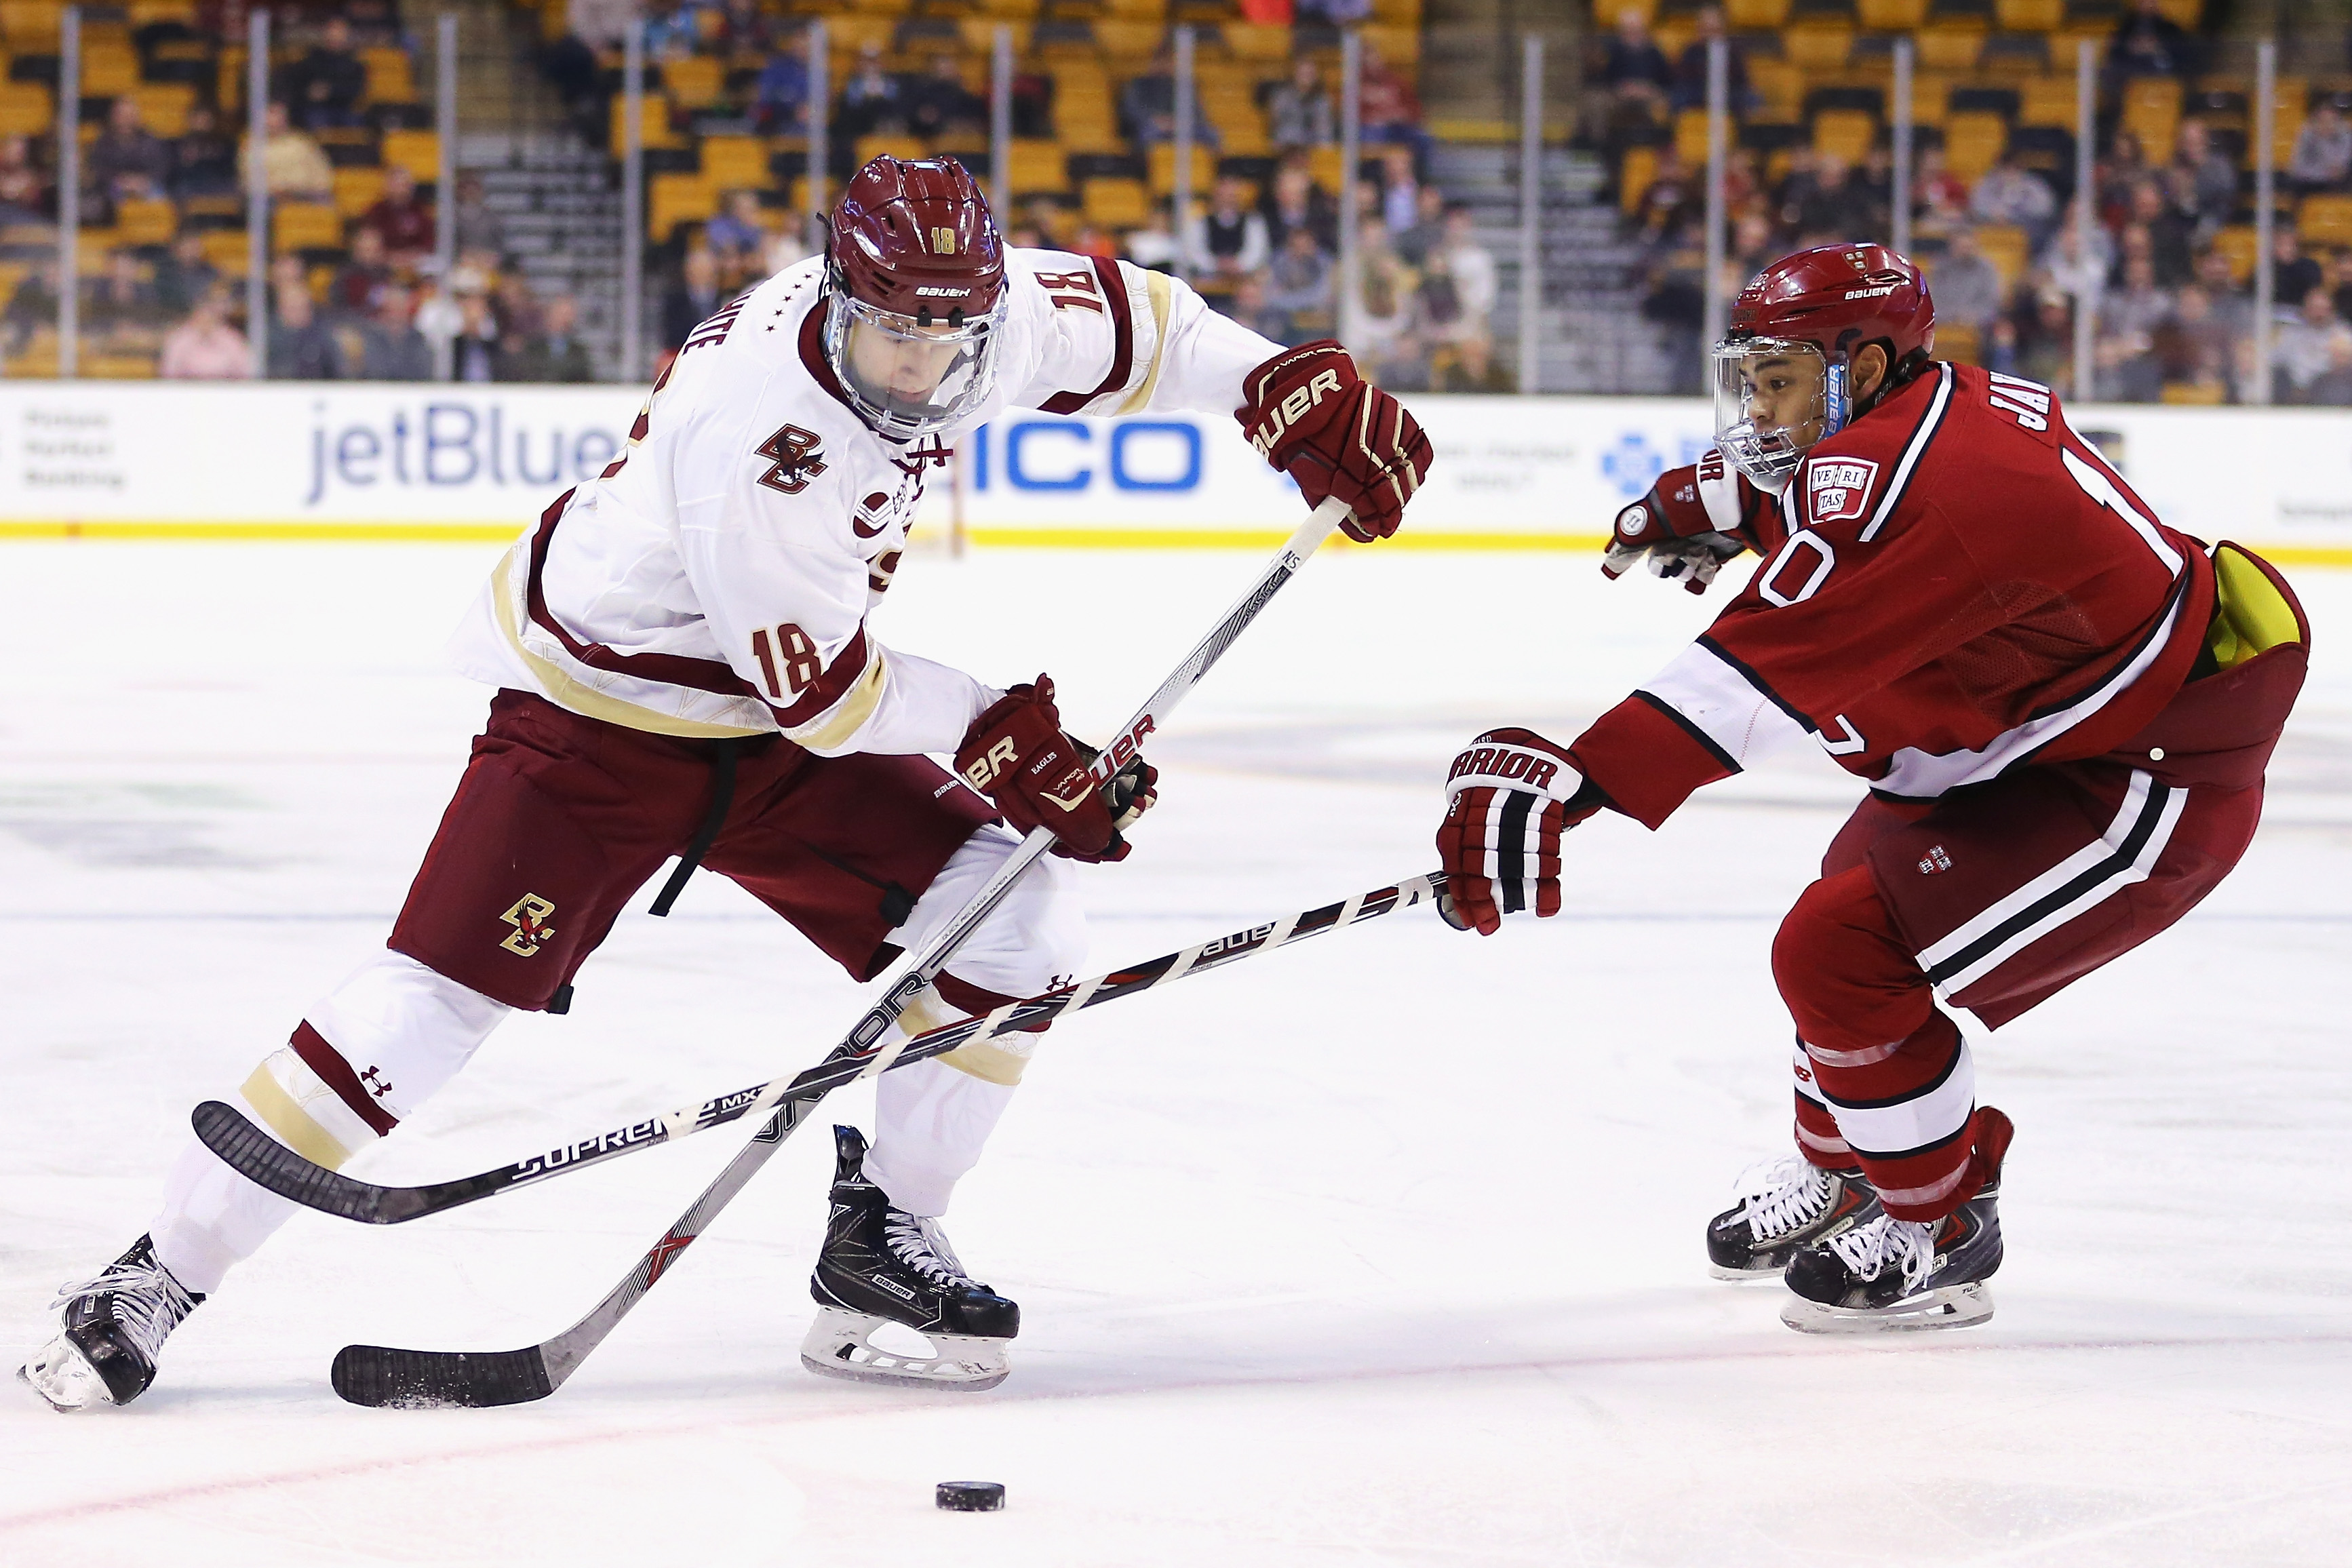 NCAA: Boston College Hockey Vs. Harvard - Q&A With The Crimson's Jake Meagher